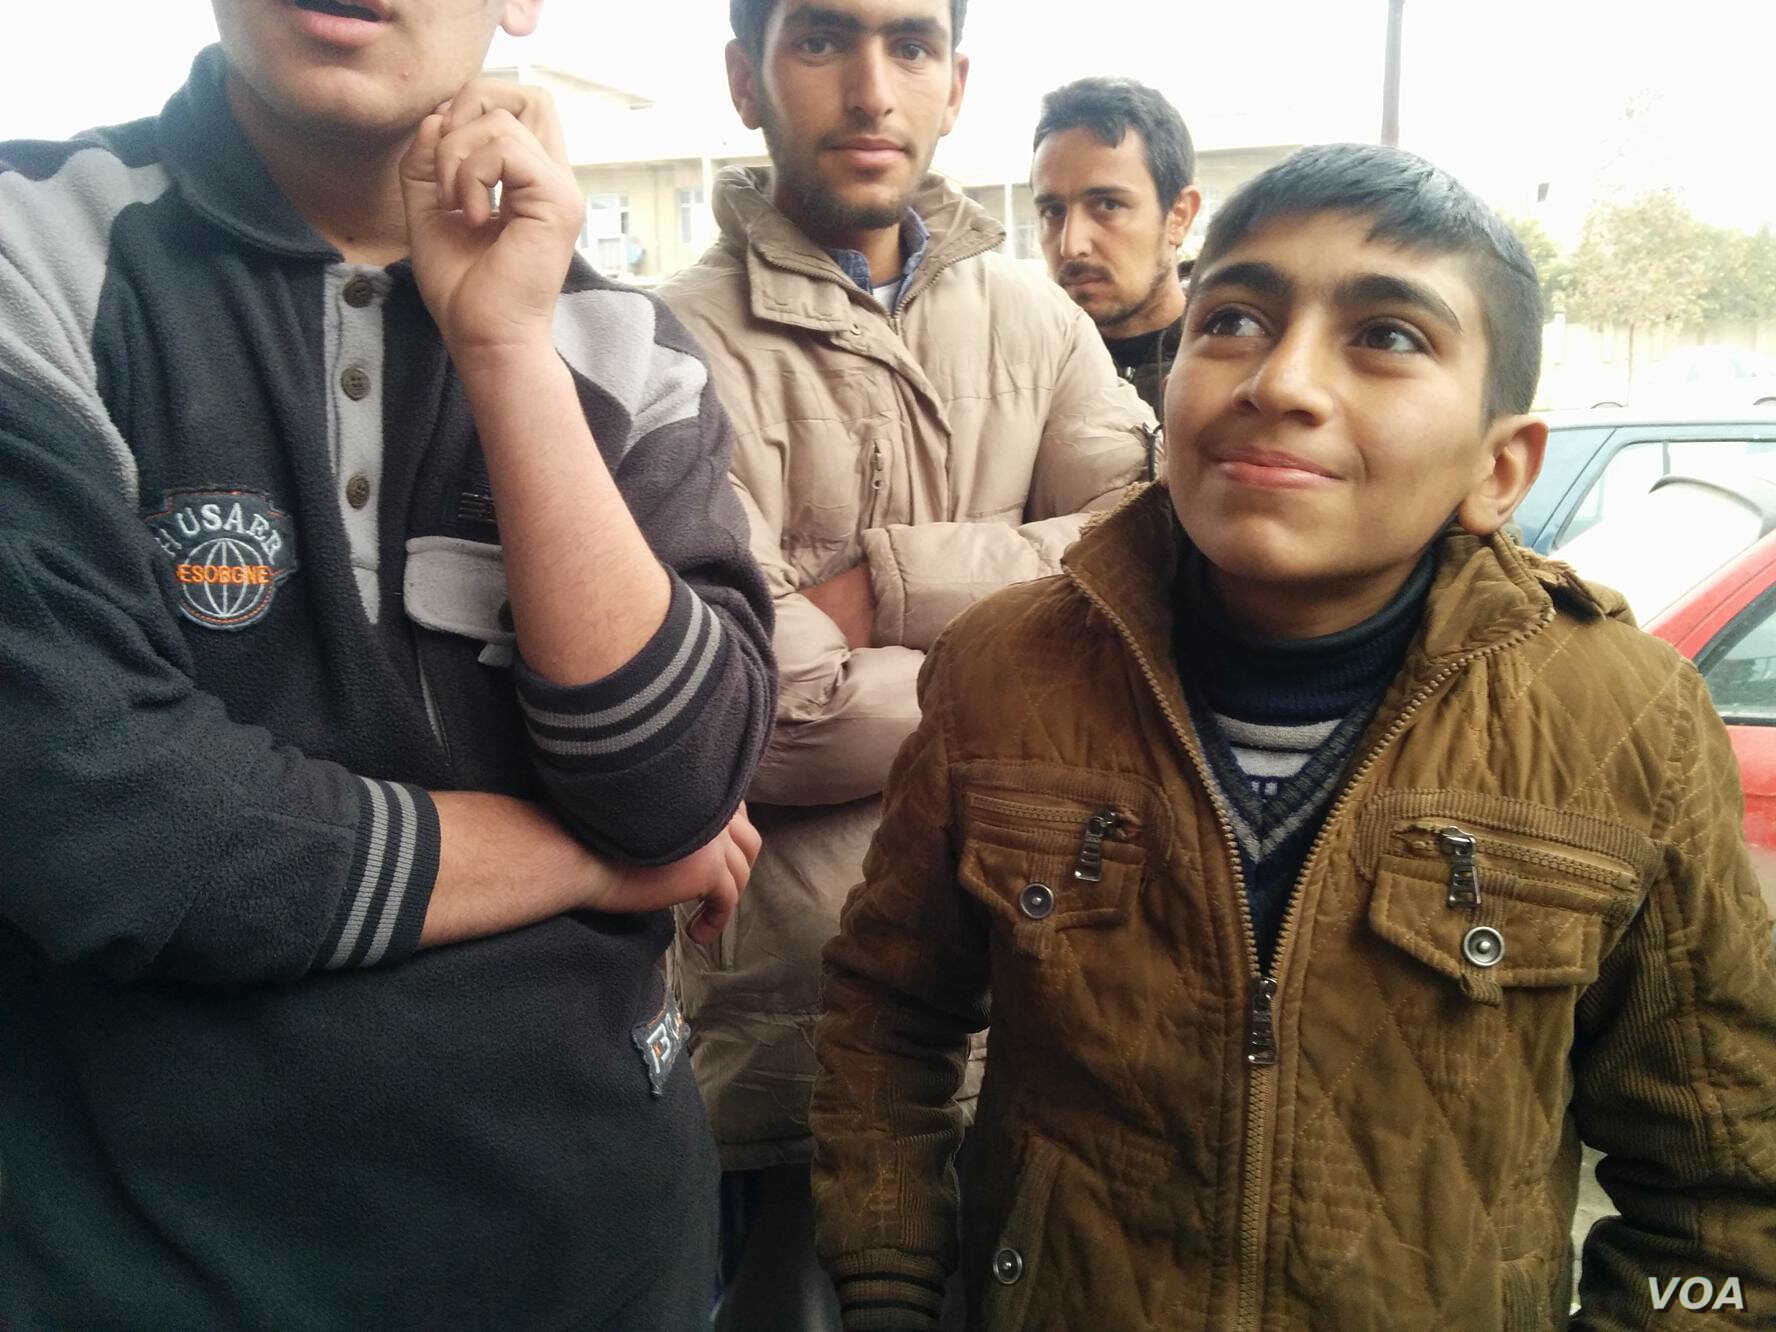 Ali, a 14-year-old breadwinner, told IS militants he couldn't join because of school, but in reality he had witnessed brutal executions on Jan. 27, 2017 in Mosul Iraq. (H.Murdock/VOA)